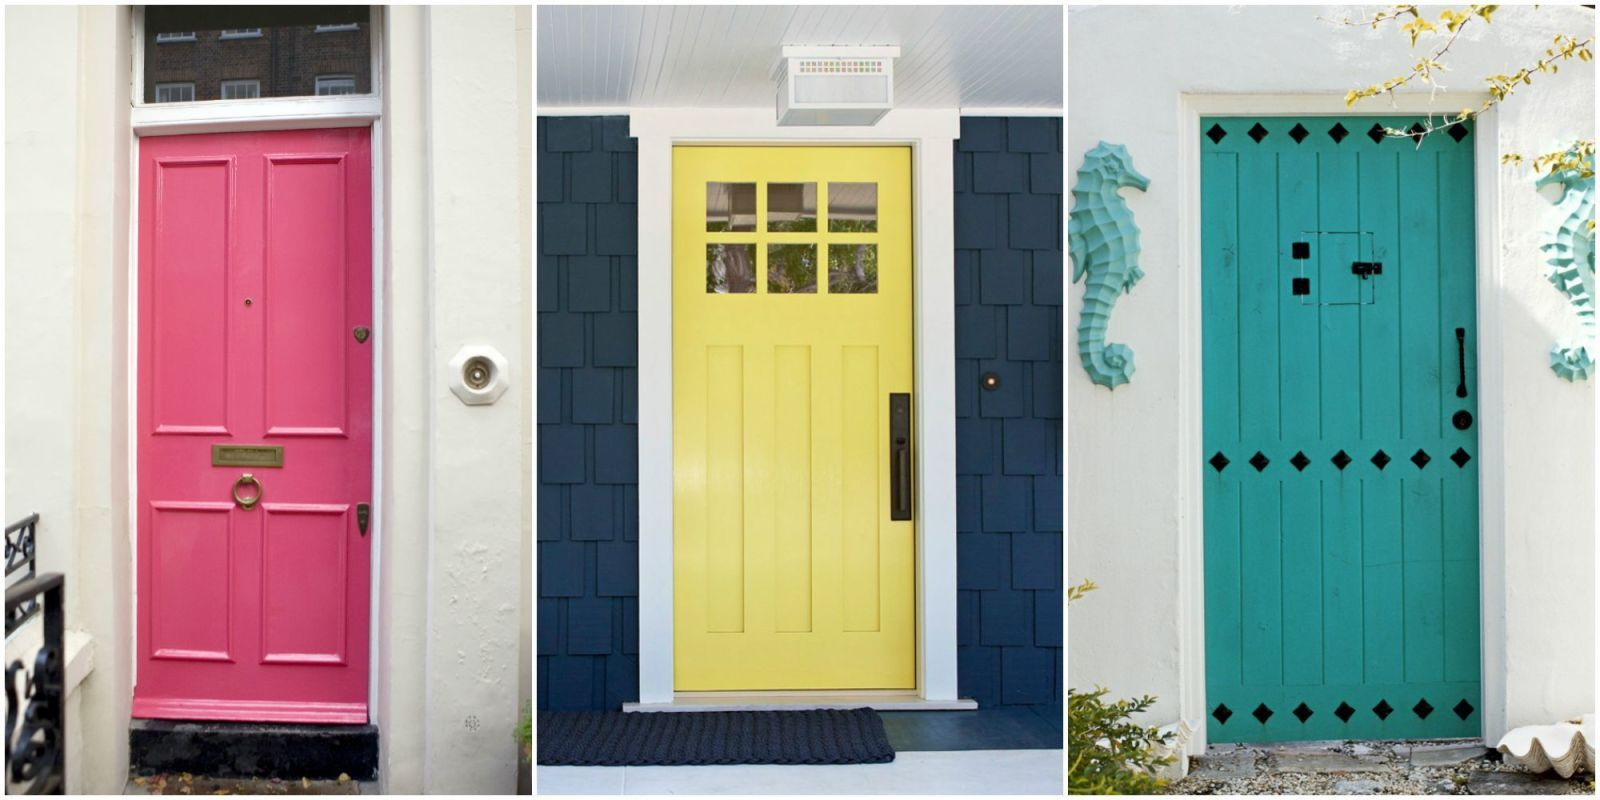 Mikkel Vang/Cliff Norton/Getty & 10 Front Door Color Meanings - What Your Front Door Says About You